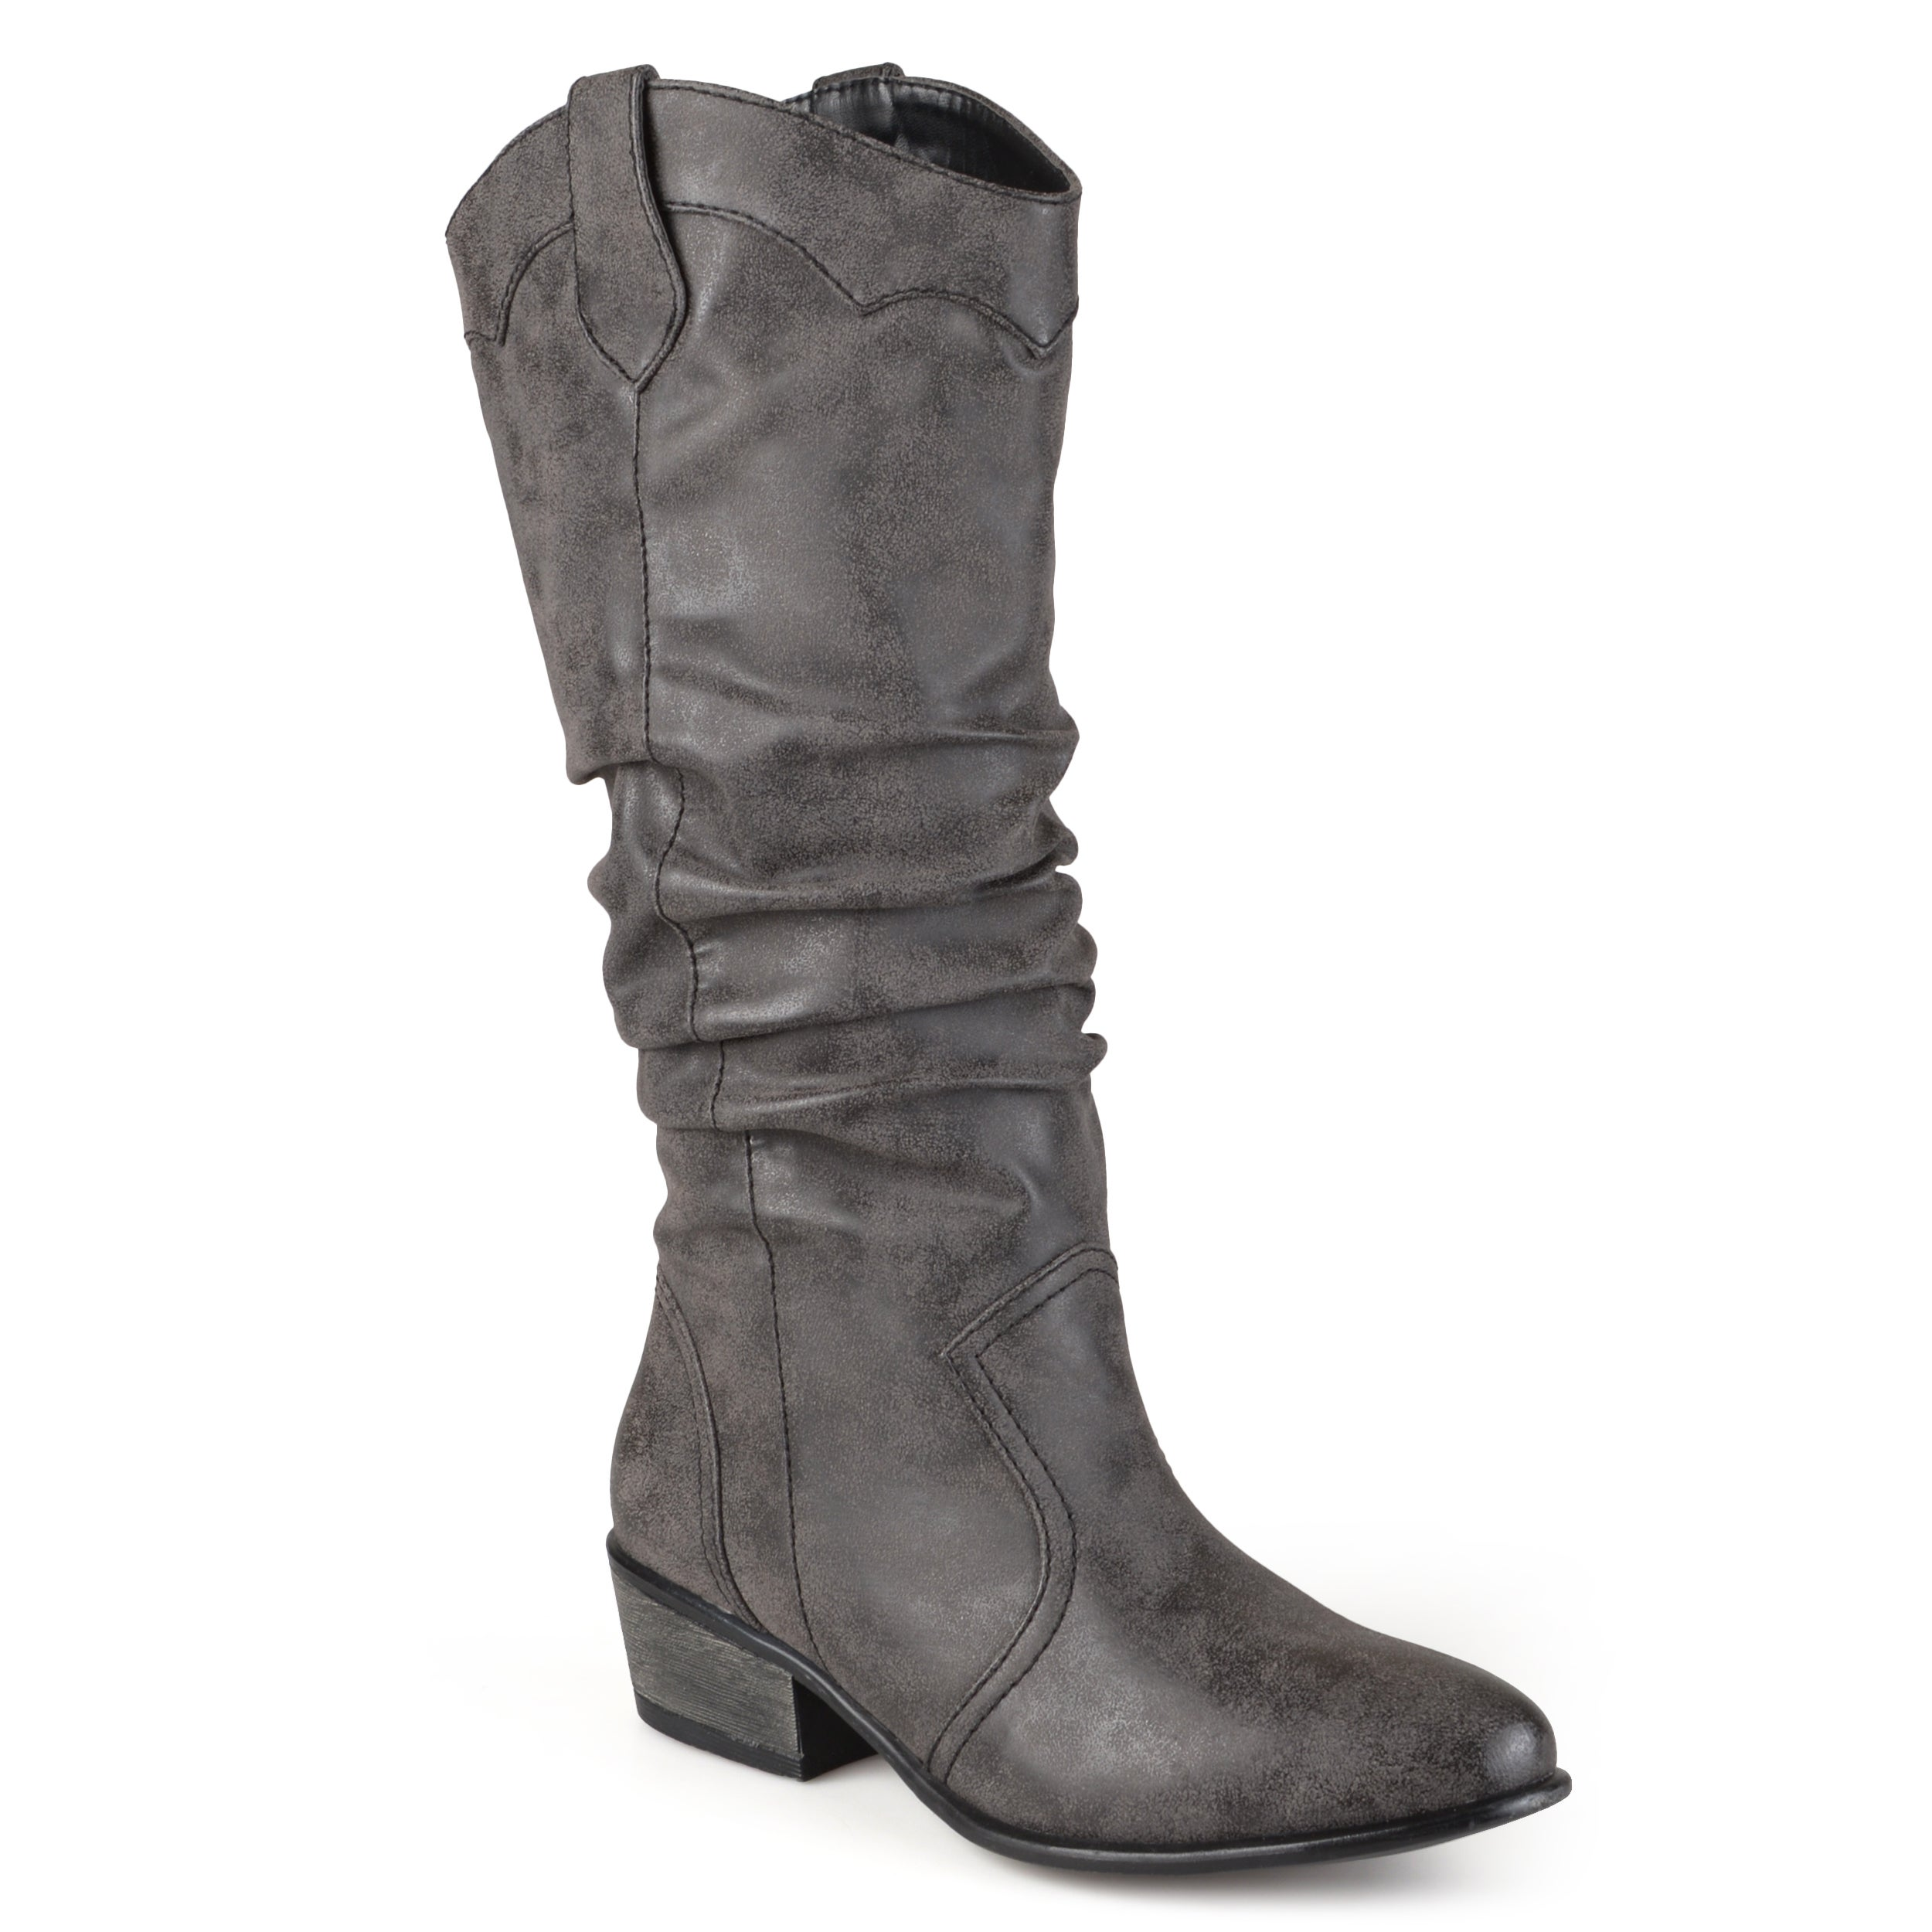 da3389543f3 Journee Collection Women's 'Drover' Regular and Wide-calf Slouch Faux  Leather Riding Boots